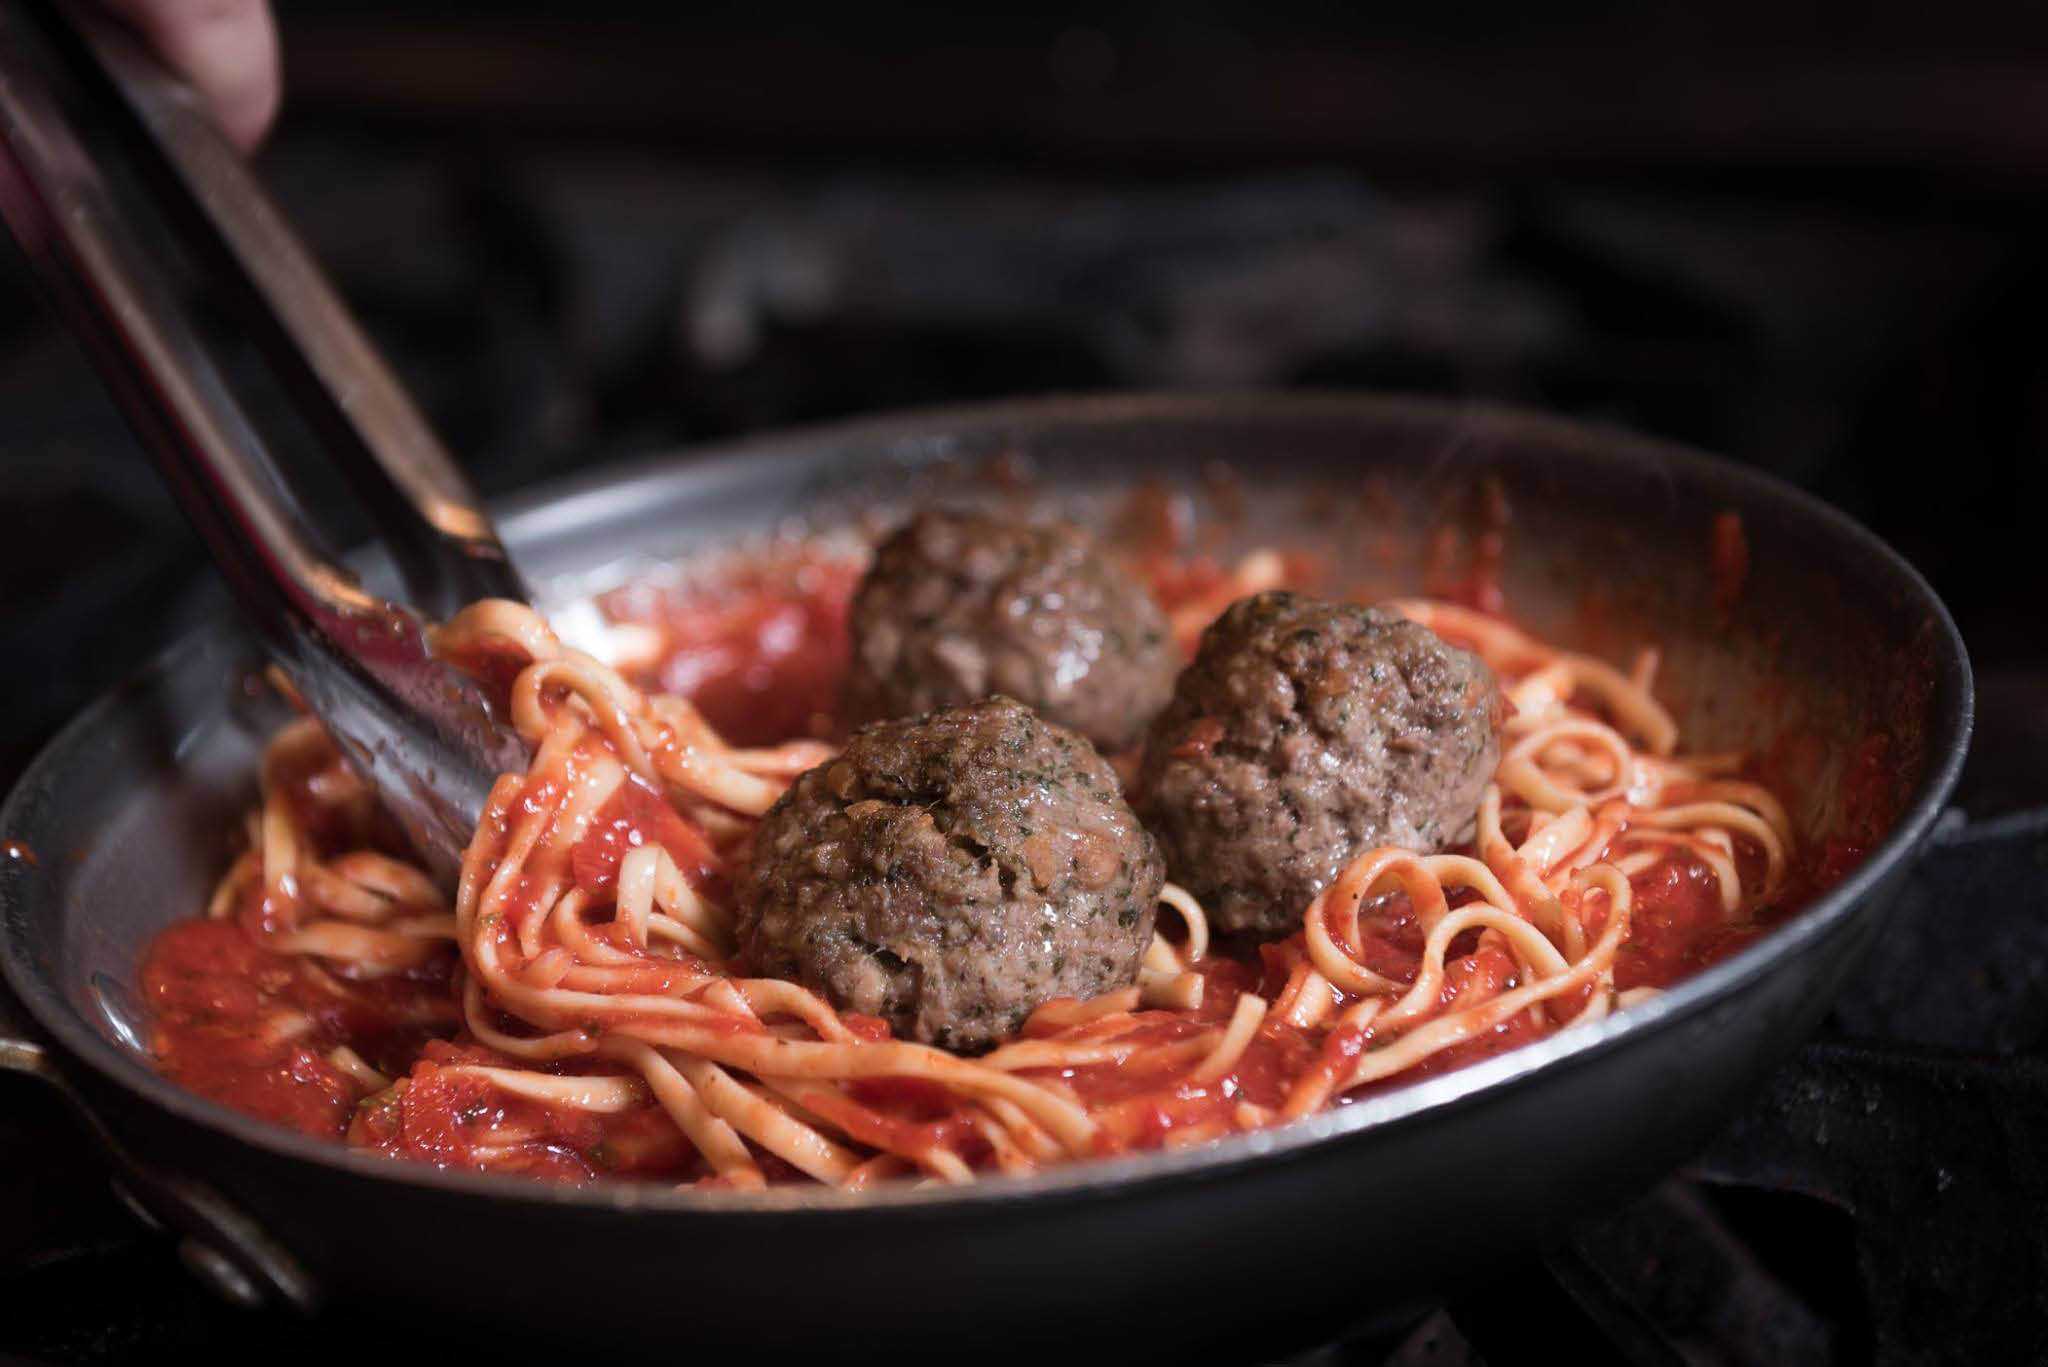 Spaghetti and sauce served with meatballs